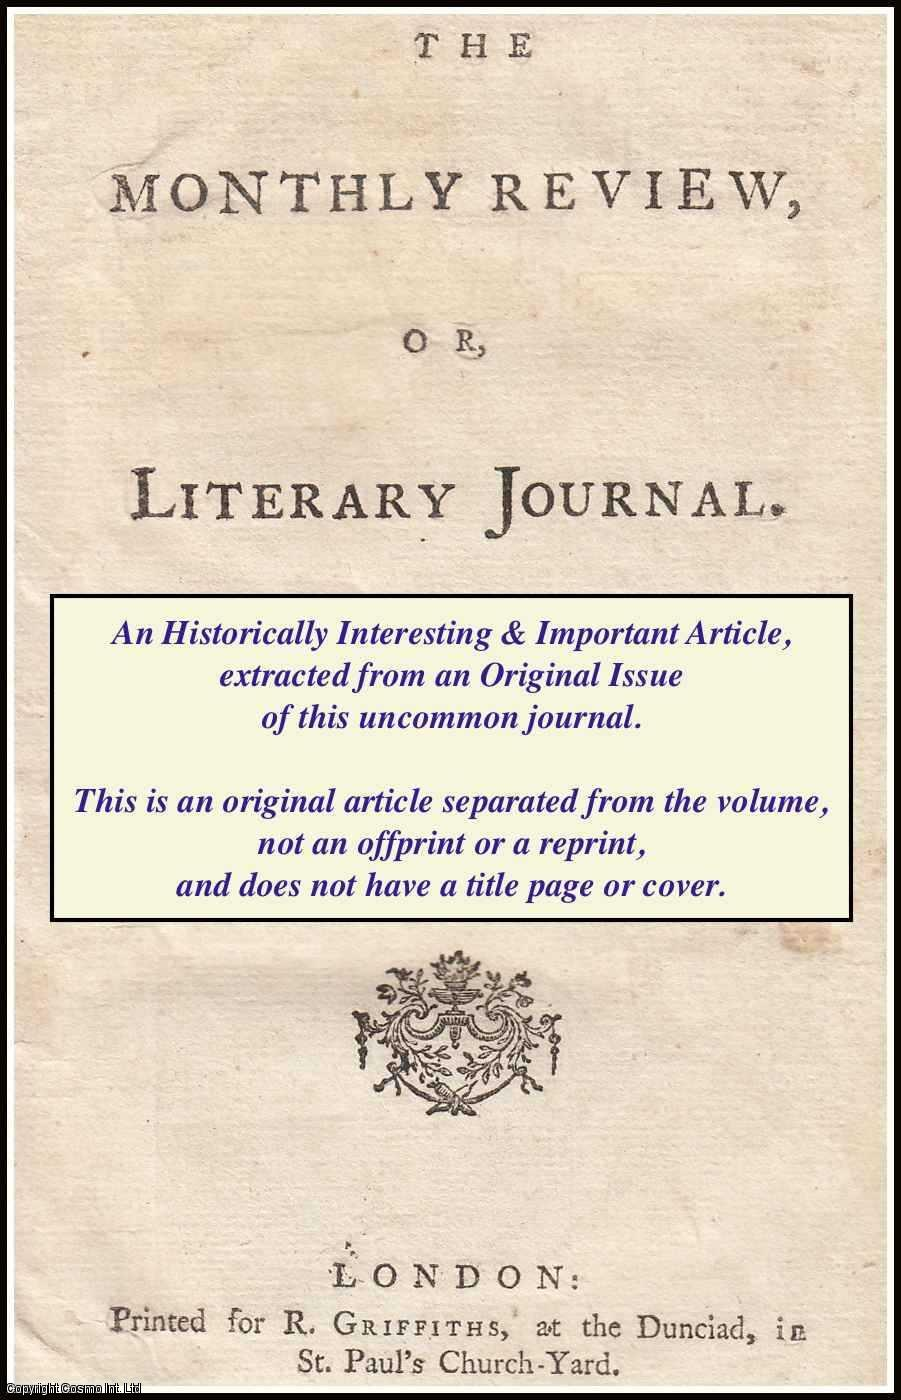 --- - A Collection of curious Discourses written by eminent Antiquaries, upon several Heads in our English Antiquities. A rare original article from the Monthly Review, 1772.